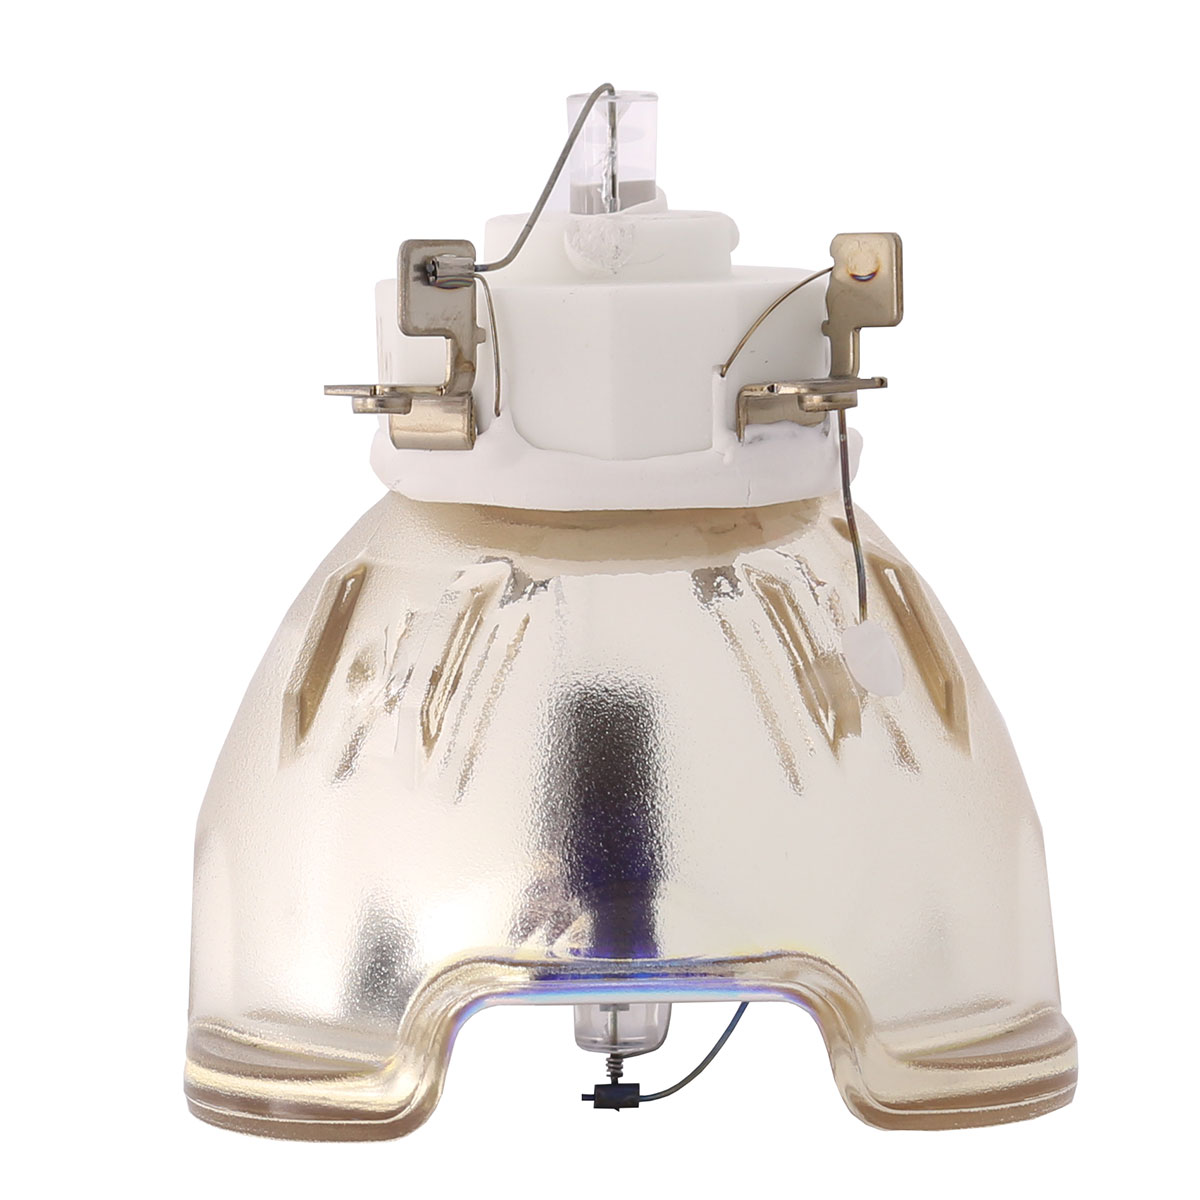 Lutema Economy for BenQ PU9730 Projector Lamp (Bulb Only) - image 2 of 5